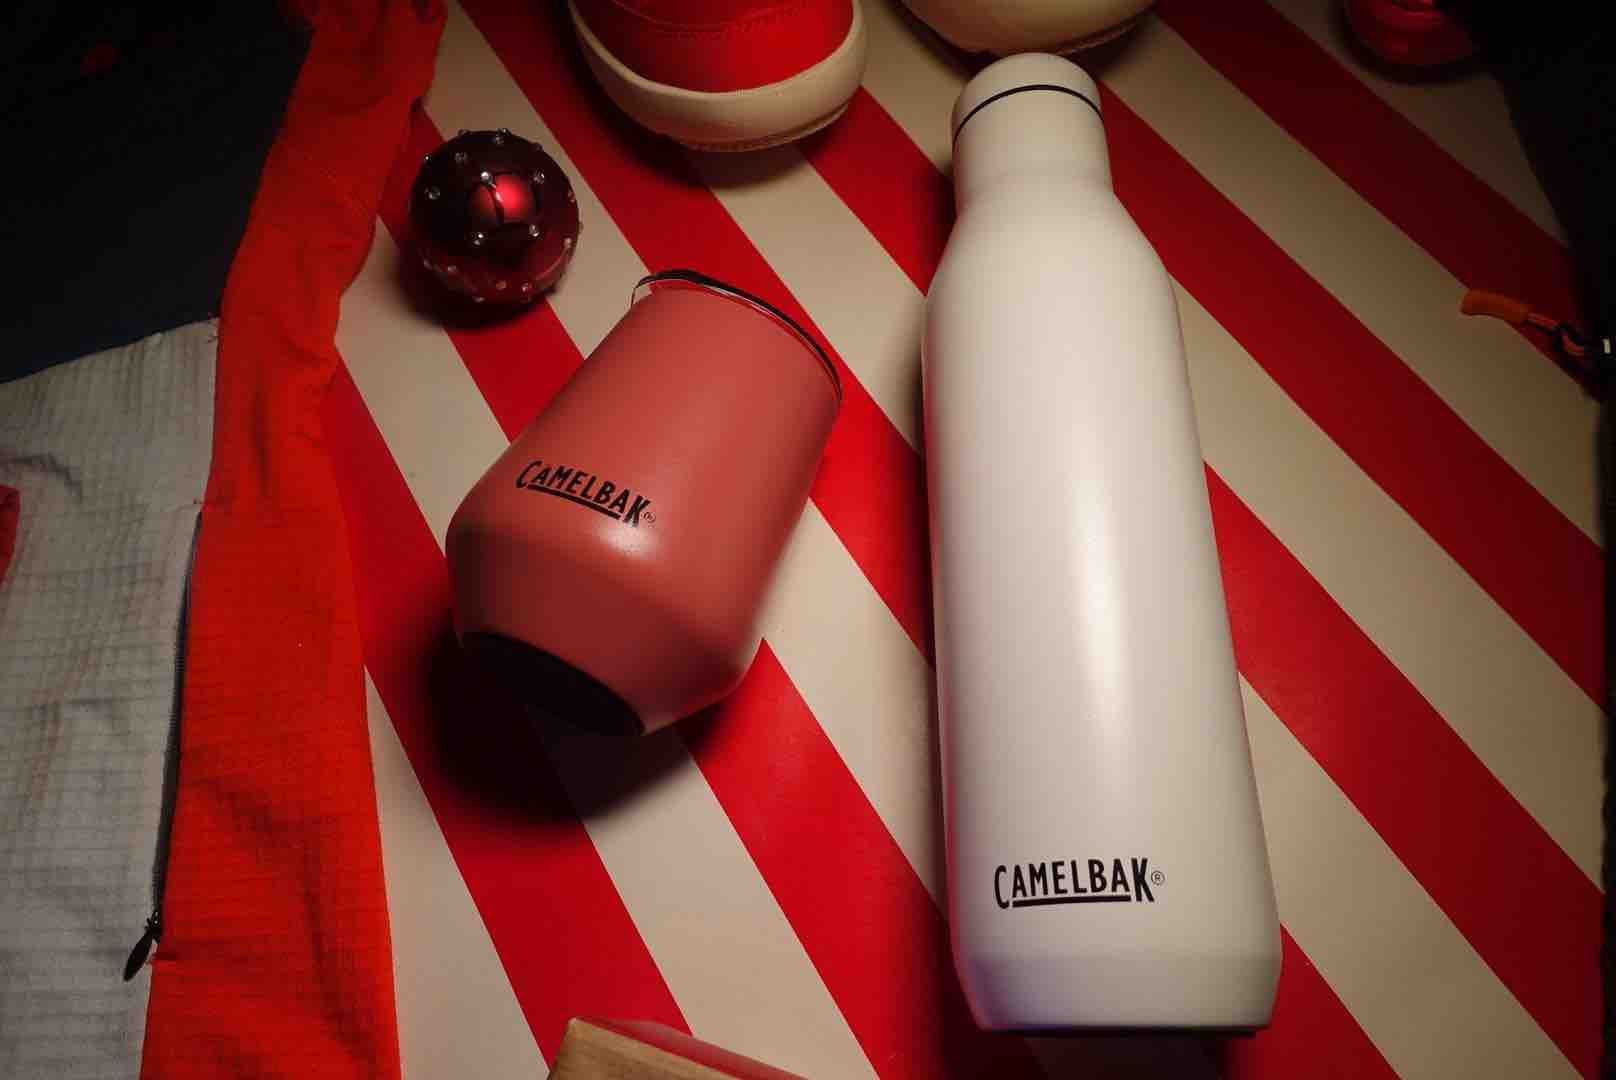 Camelbak Drinkware Are Great Gifts For Outdoor Lovers